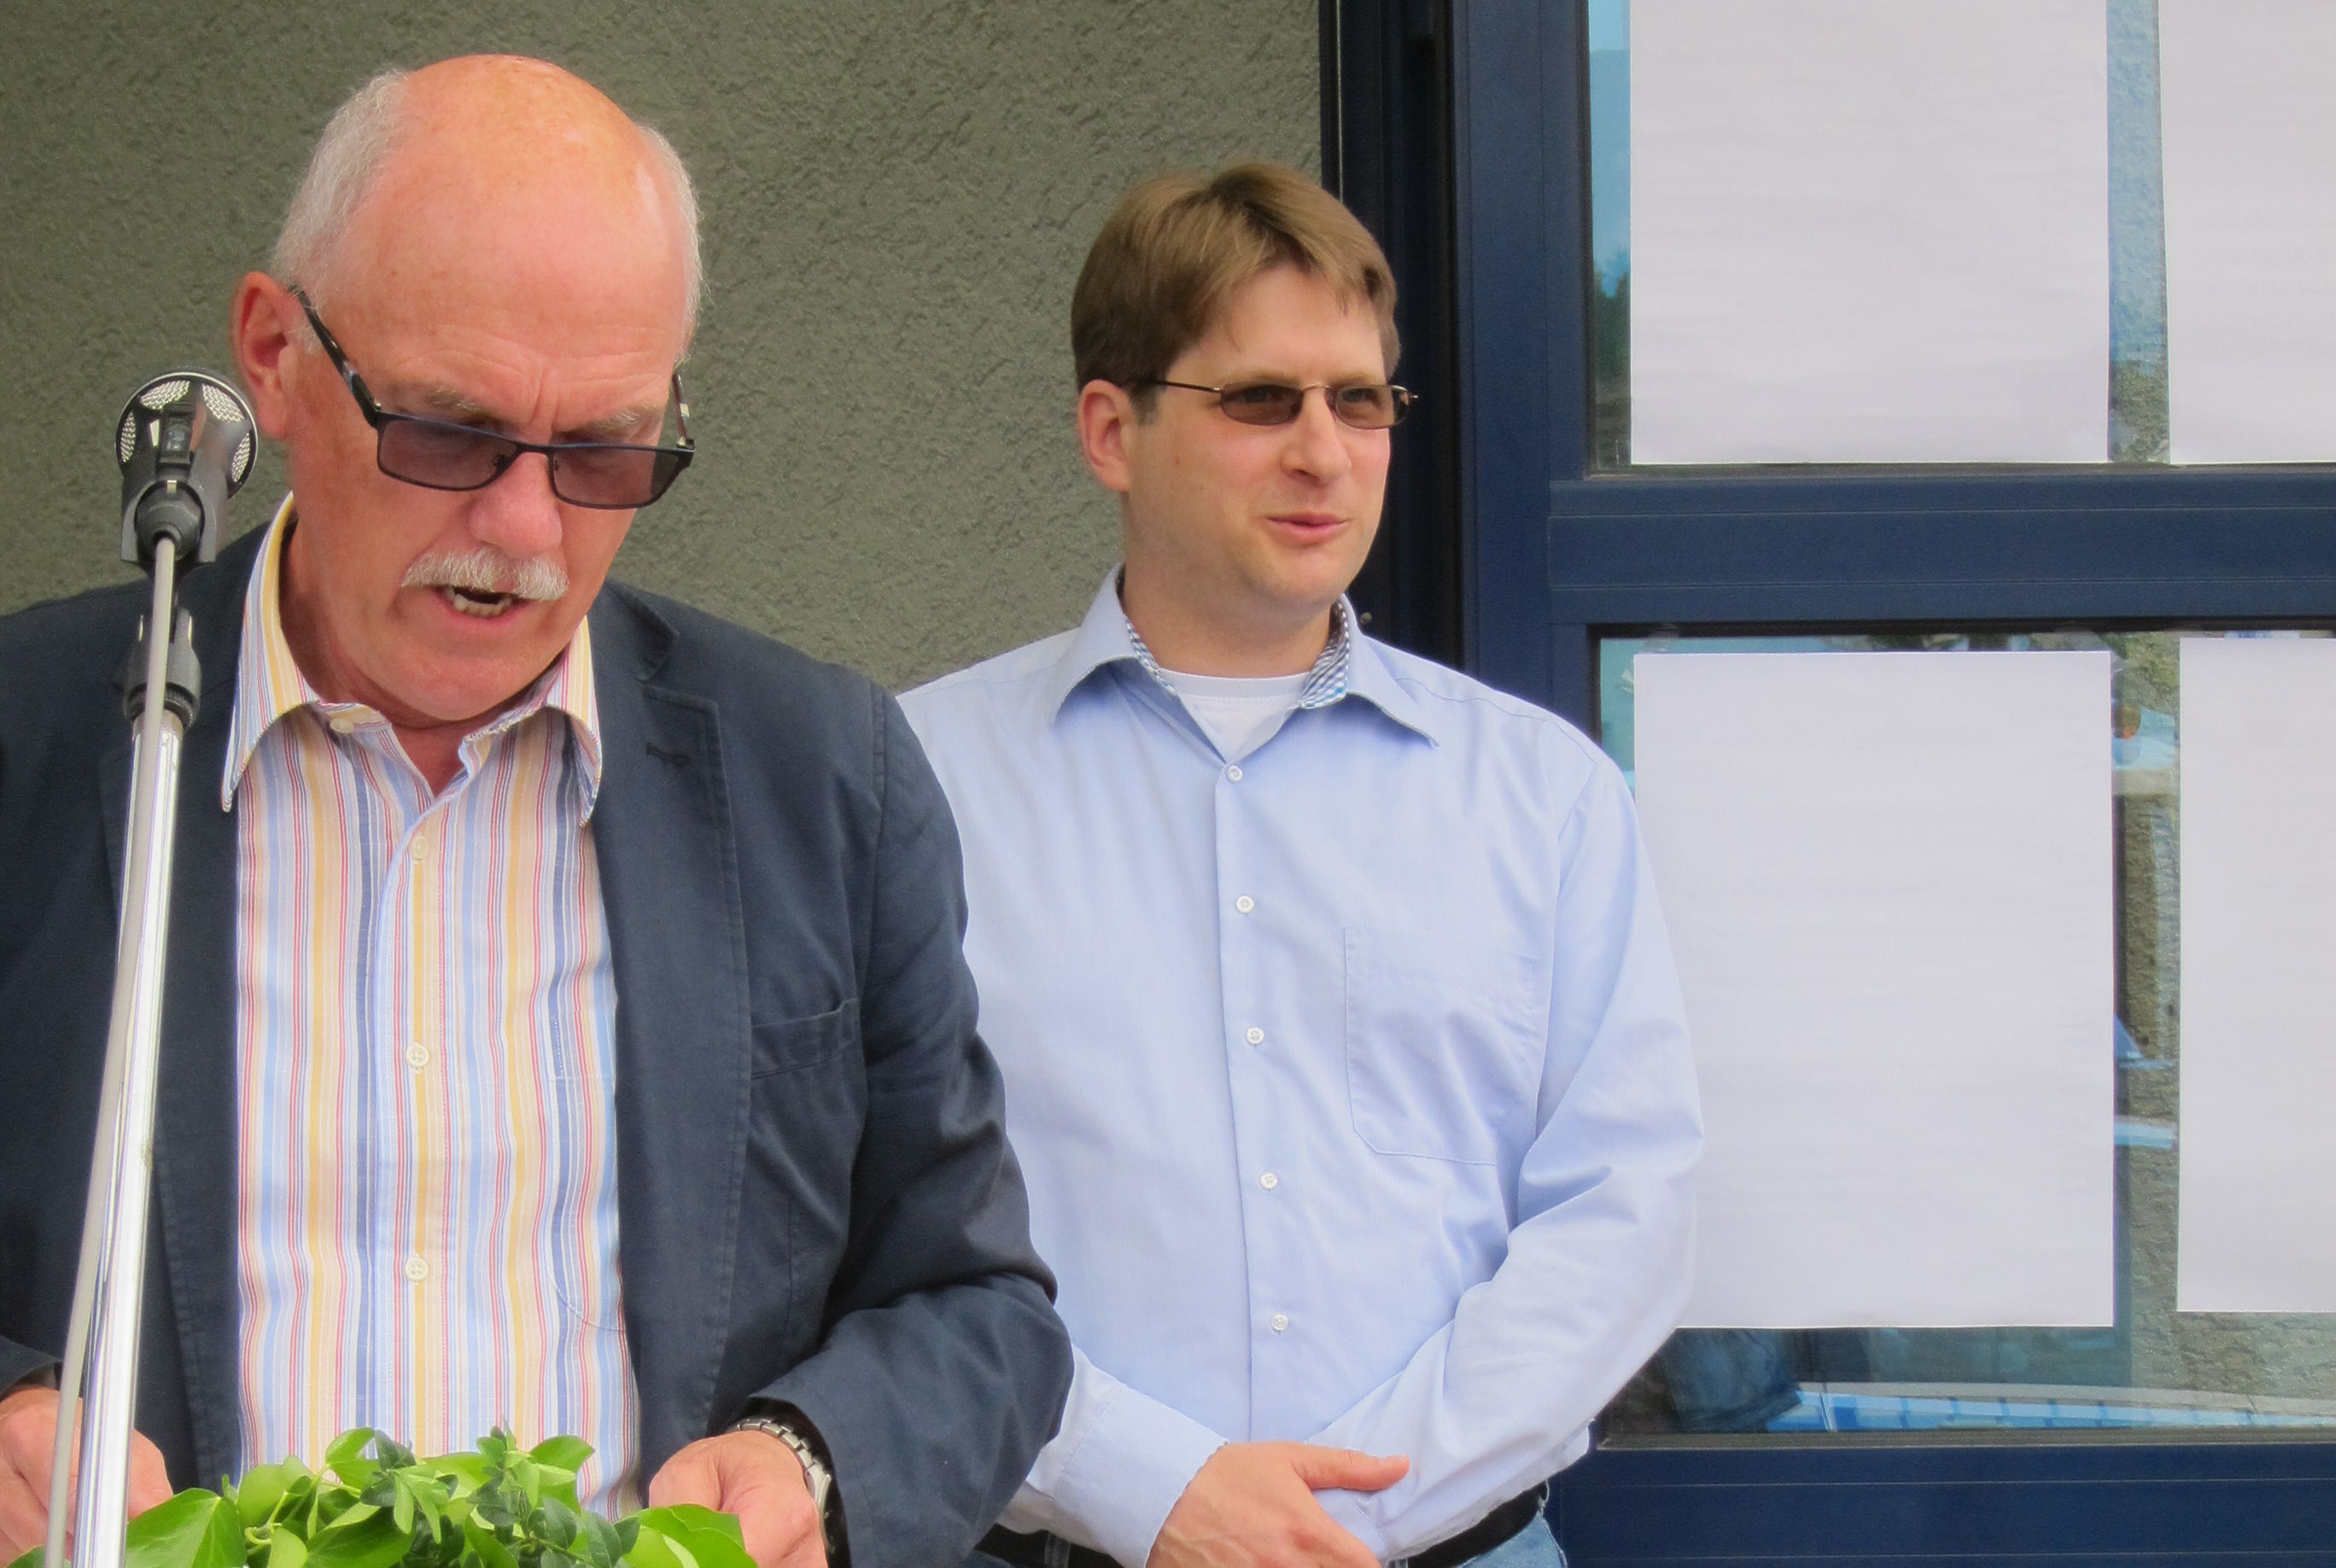 Mayor Hans-Norbert Anspach with our manager Dr. Bernd-Helge Leroch at the appraisal in Hochspeyer.